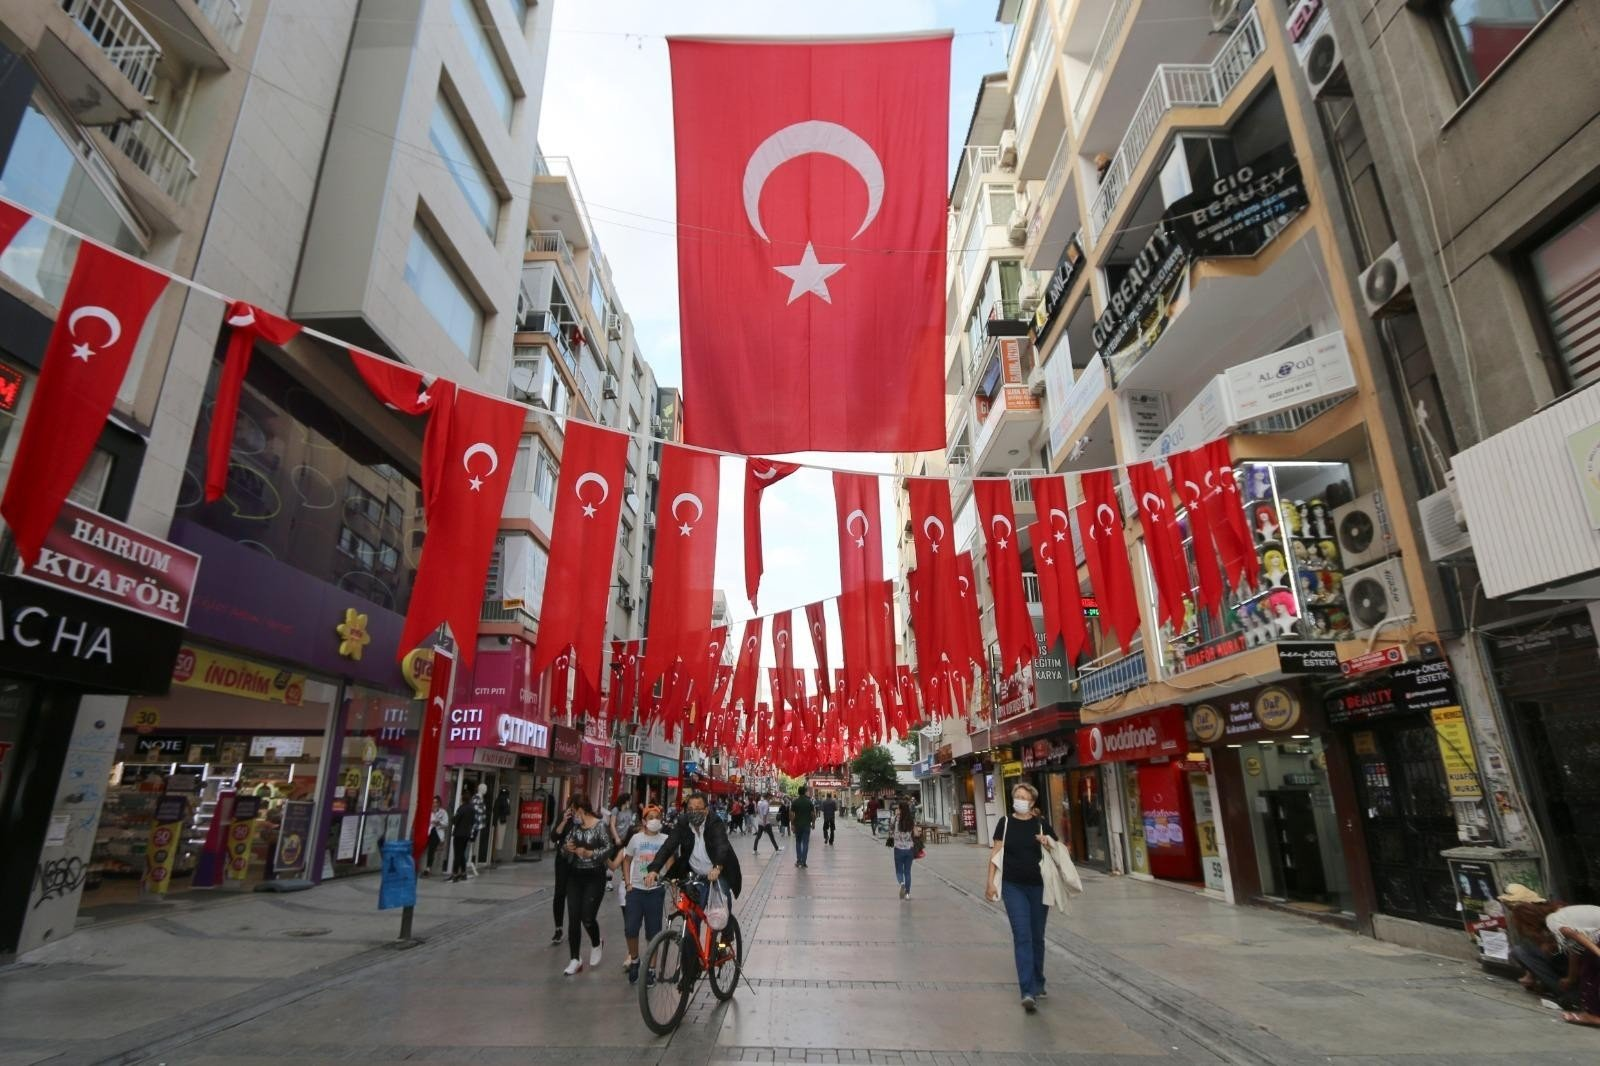 Turkish flags adorn the streets for Republic Day in Izmir, western Turkey, Oct. 28, 2020. (İHA Photo)